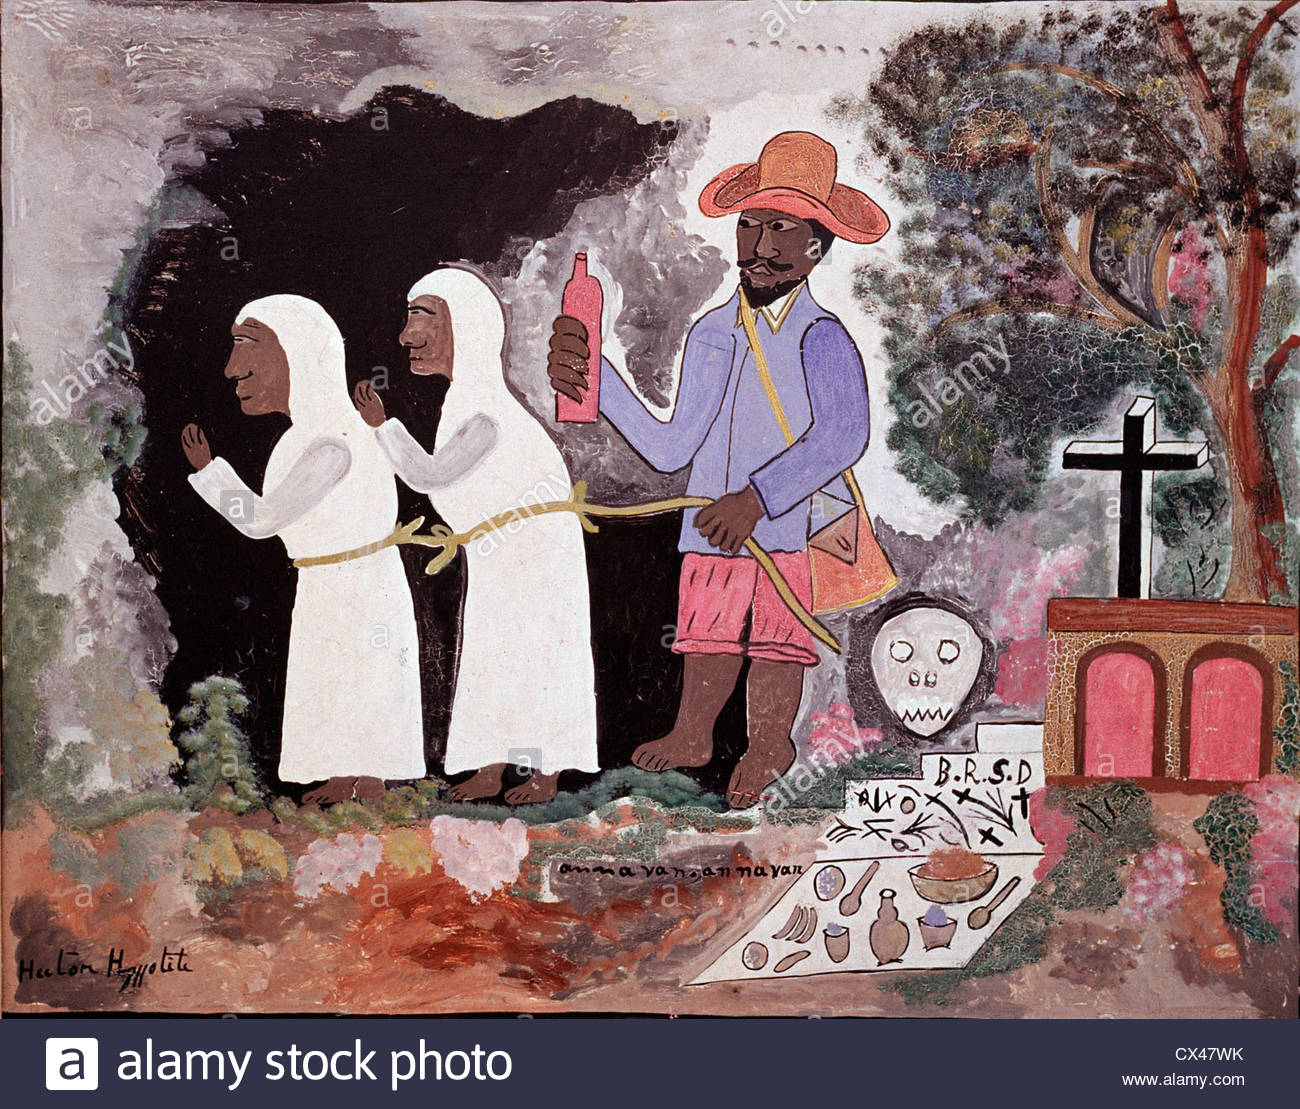 Haiti naive painting by Hector Hyppolite 'The Zombies', the living Dead in Haitian voodoo, Port-au-Prince - Stock Image